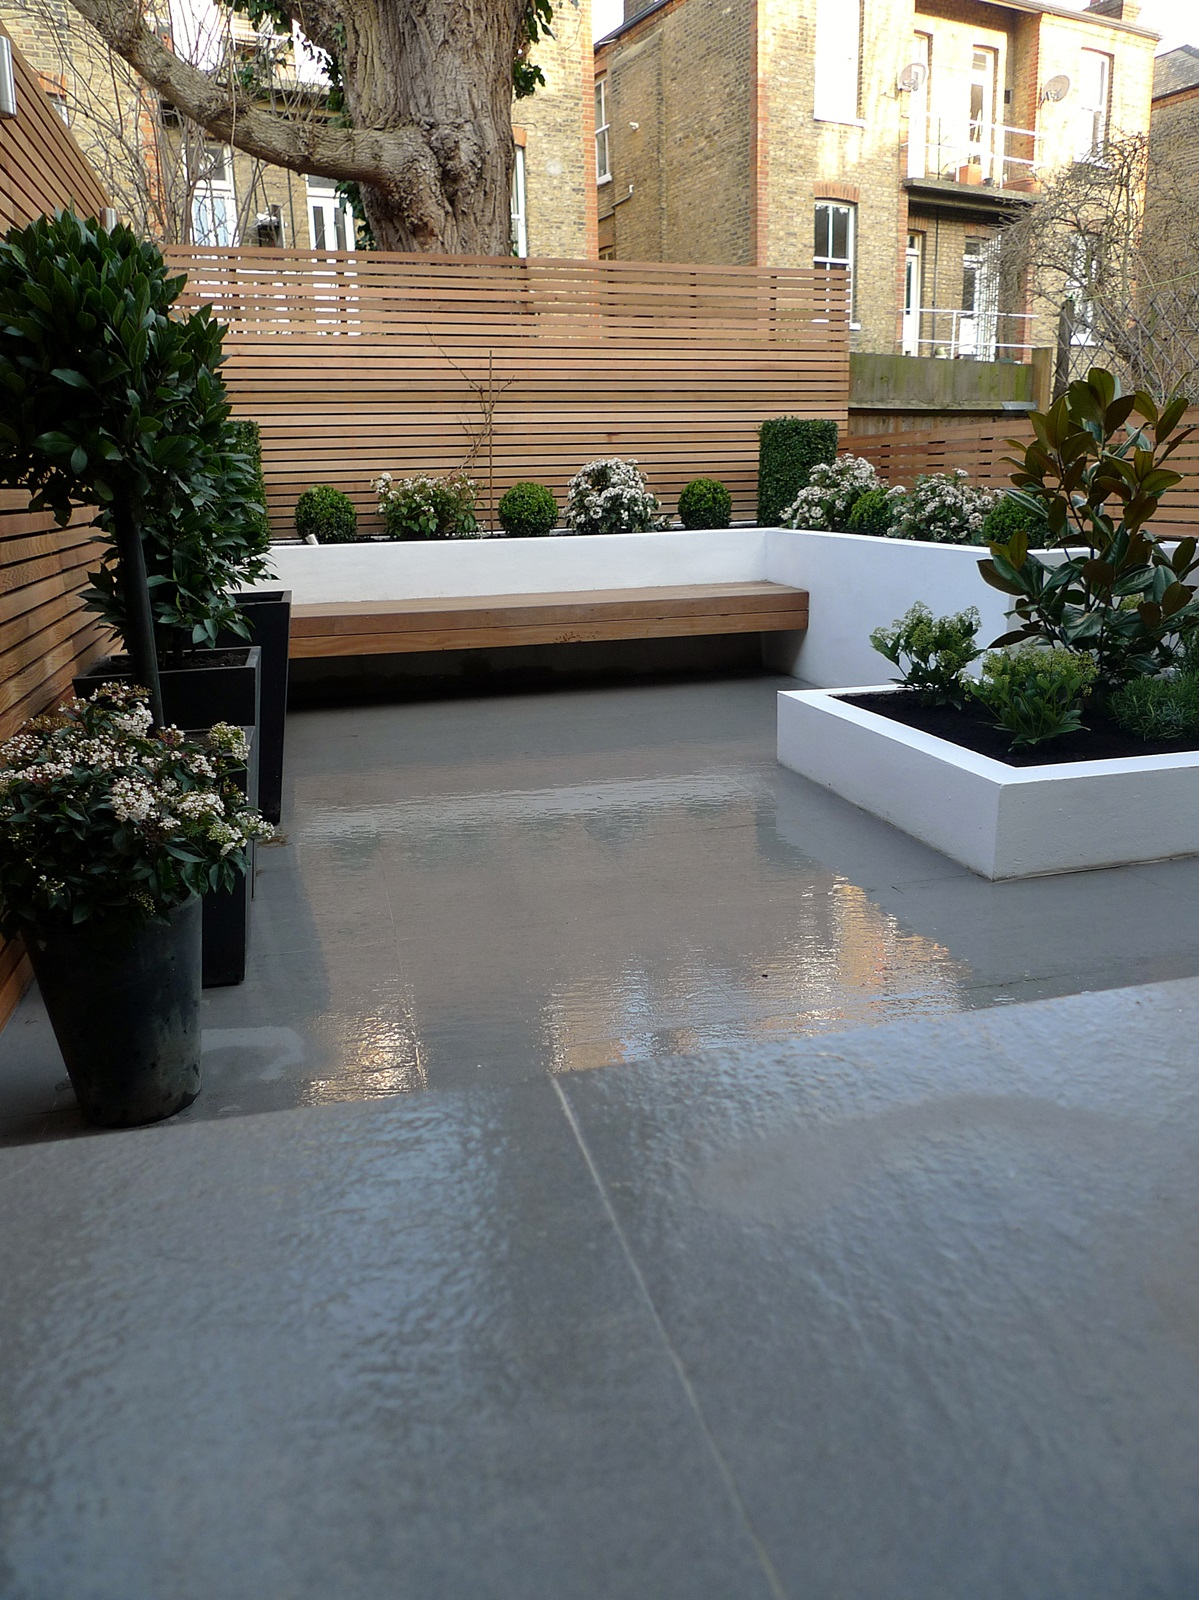 Garden design designer clapham balham battersea small low maintenance modern garden (7)